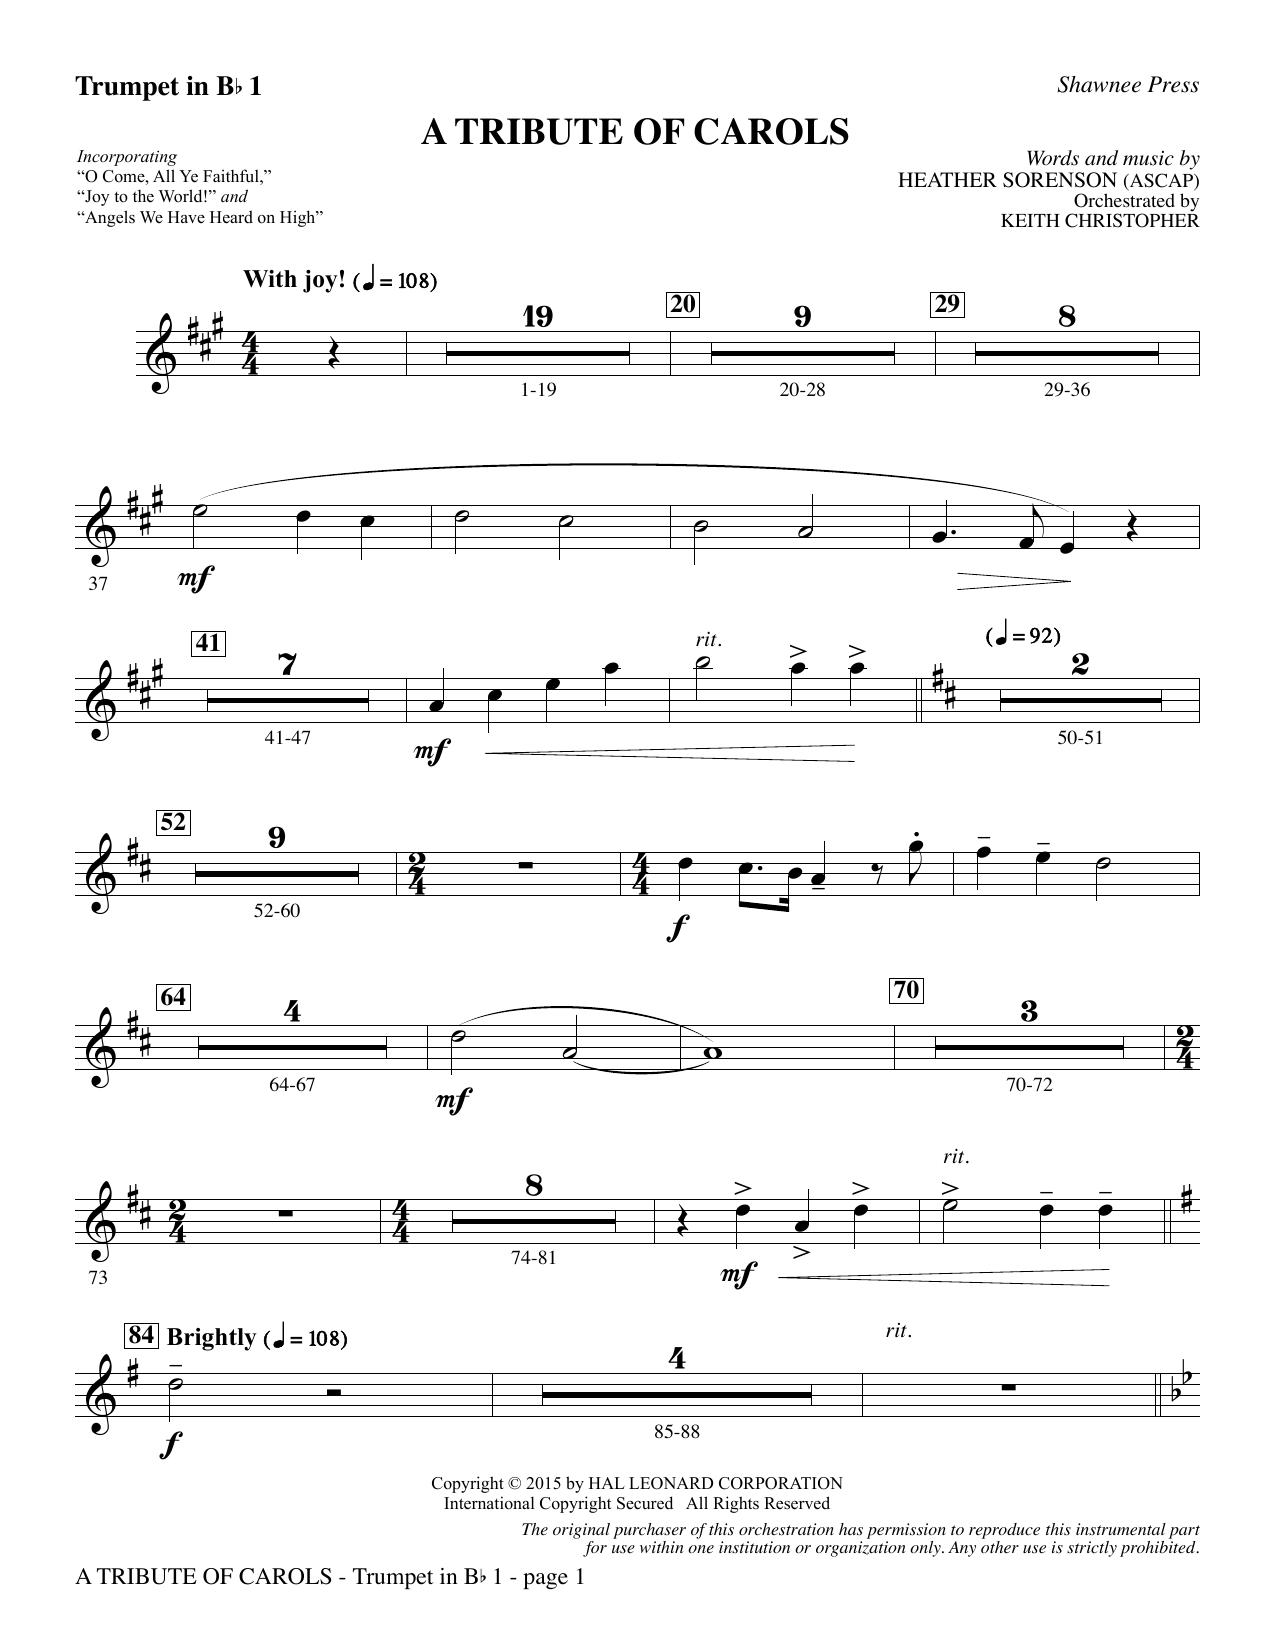 Download Heather Sorenson 'A Tribute of Carols - Bb Trumpet 1' Digital Sheet Music Notes & Chords and start playing in minutes